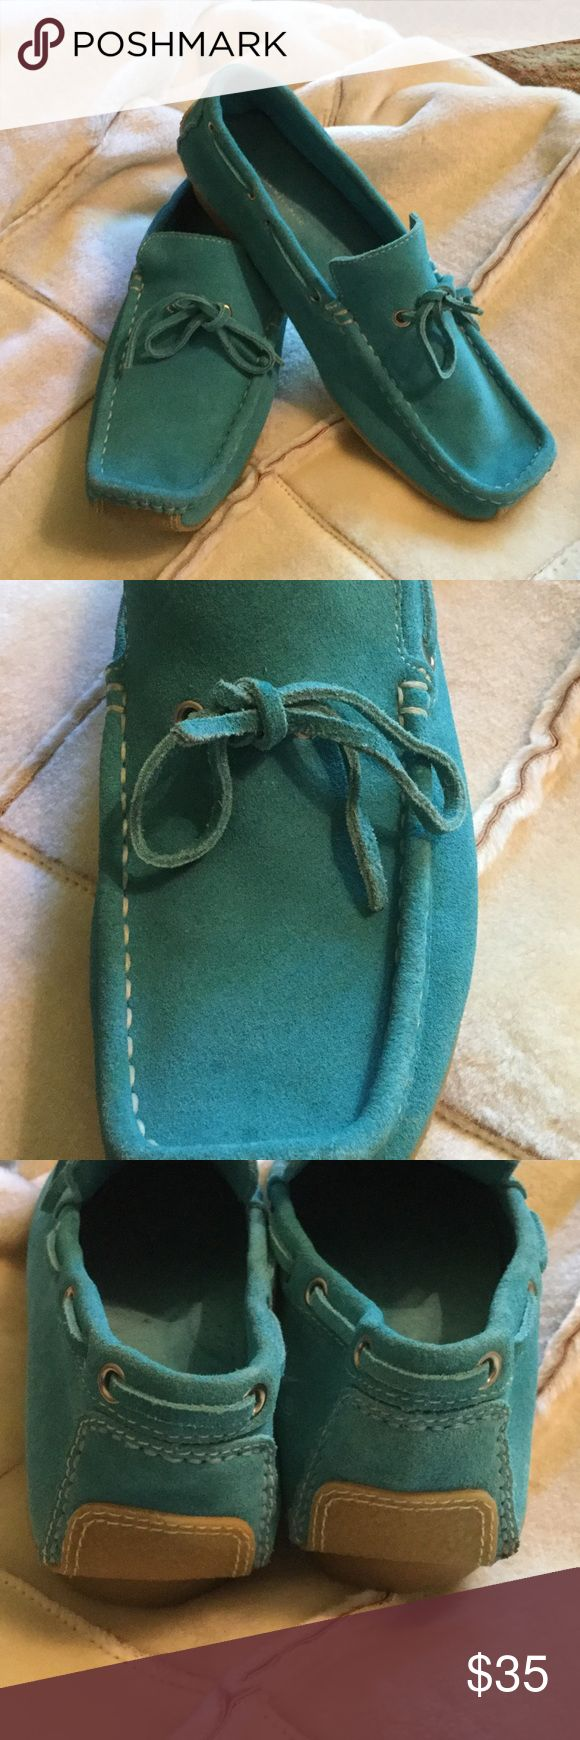 Banana Republic Suede Slip-on Loafers (NEW) Banana Republic Suede Turquoise Slip-ons Loafers (NEW) Banana Republic Shoes Flats & Loafers